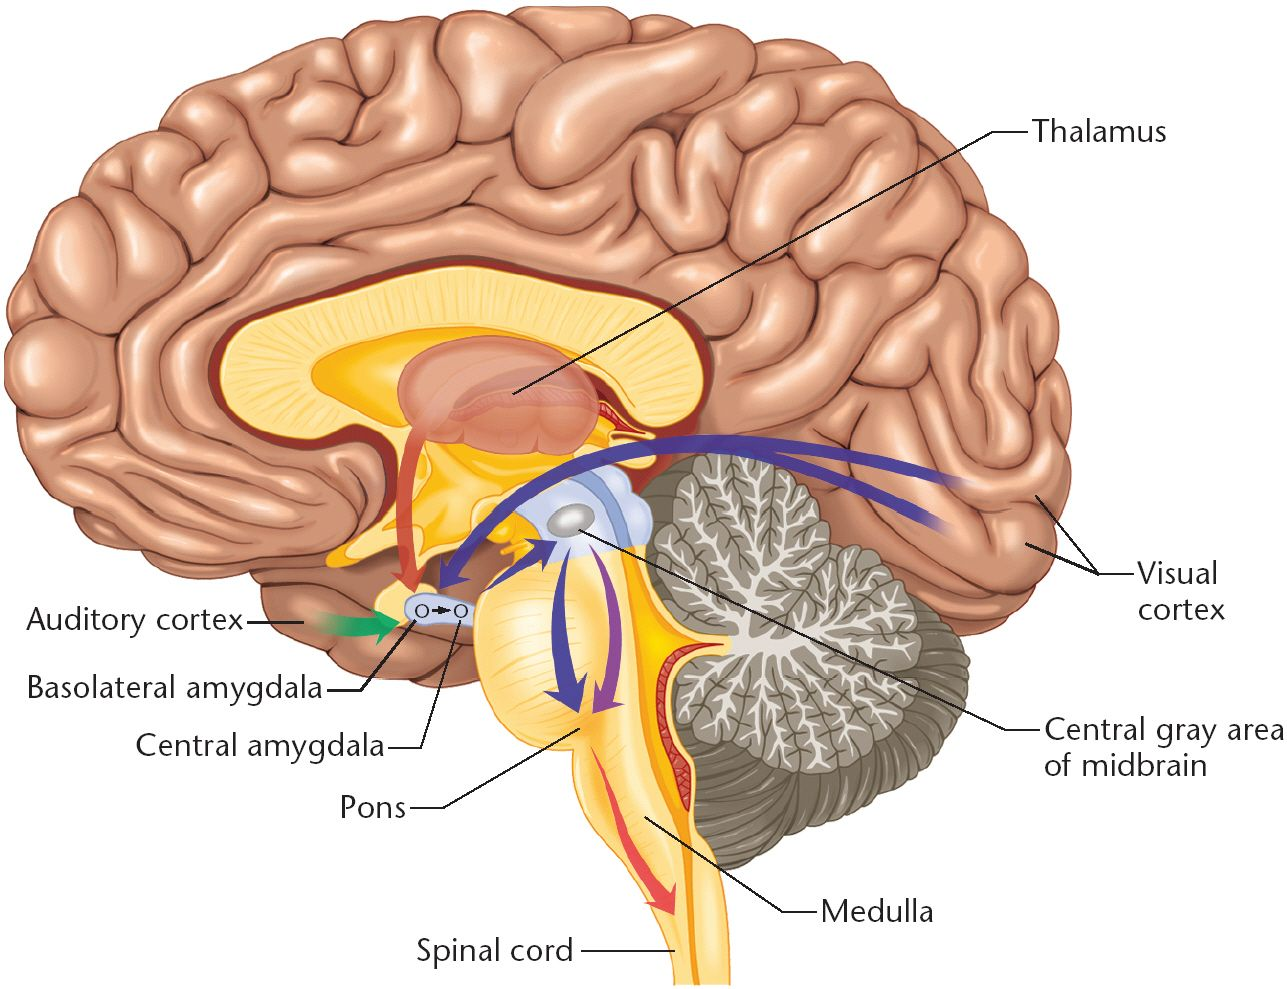 All Parts Of Inside Brain Unlabeled Diagram Brain Diagram Labeled Diagram Of The Brain